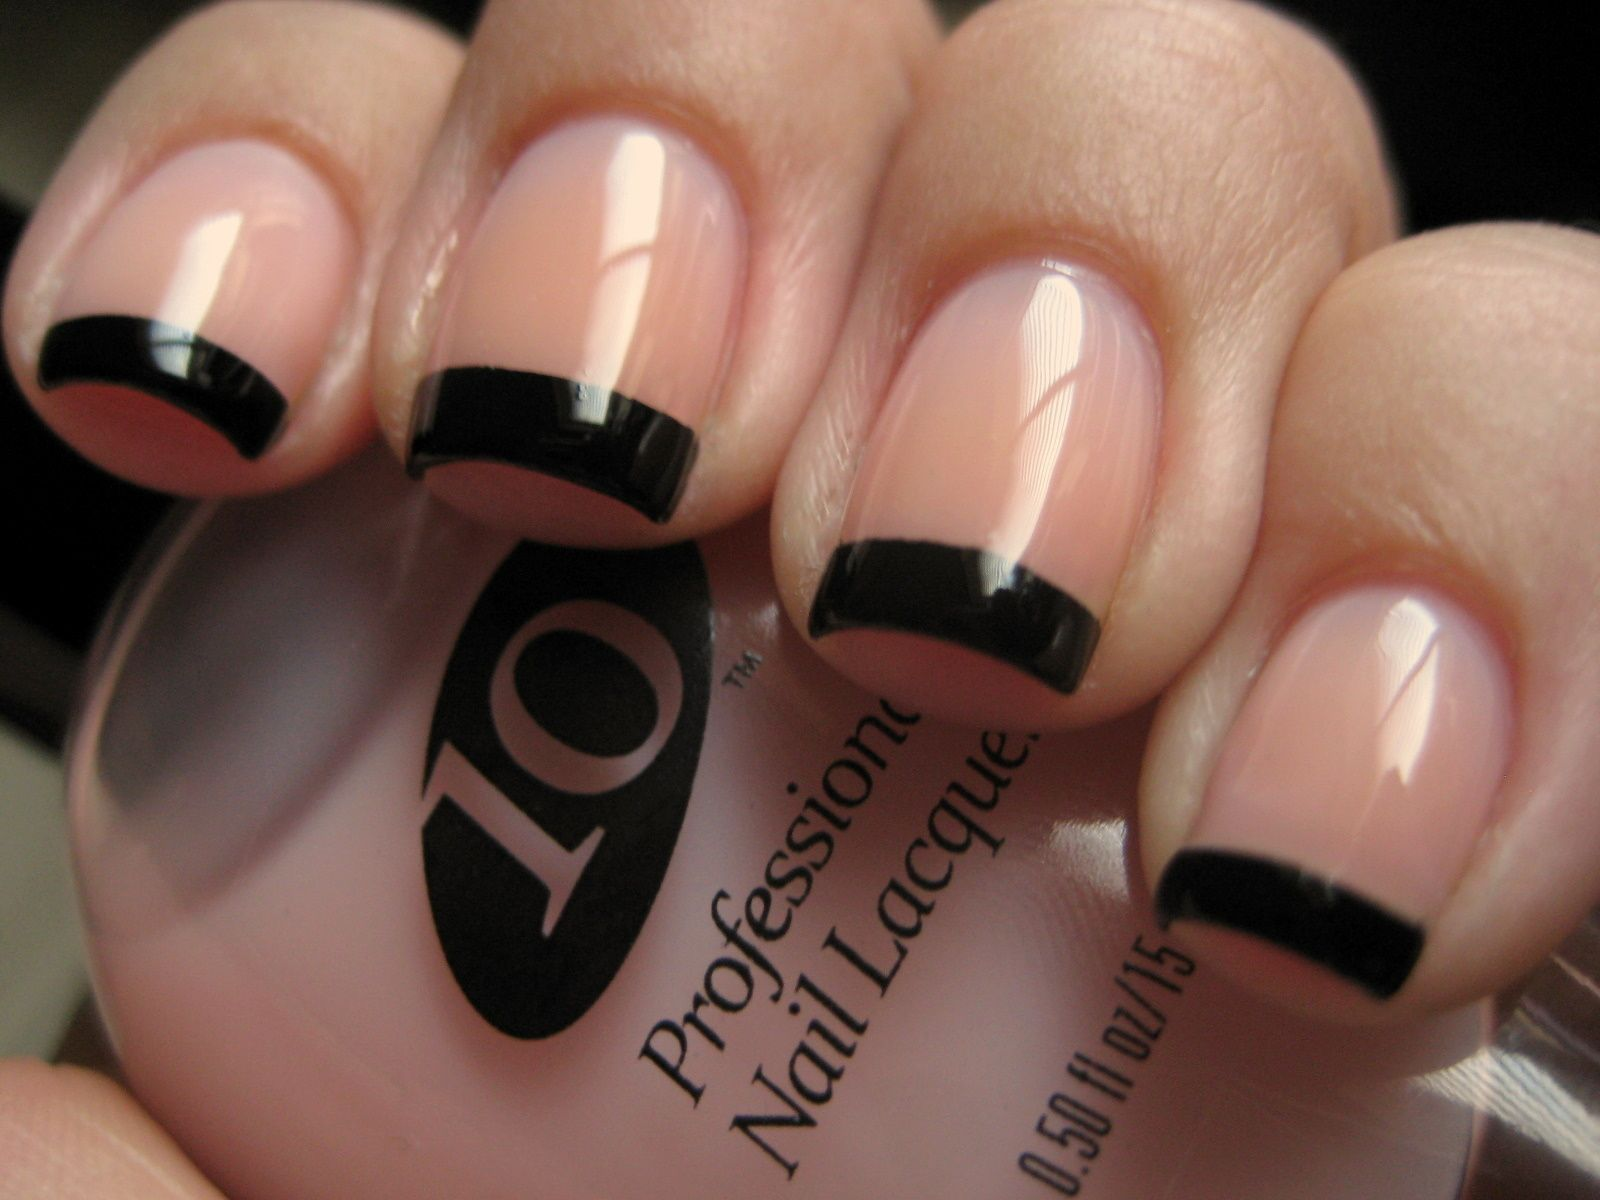 Black-tip french manicure